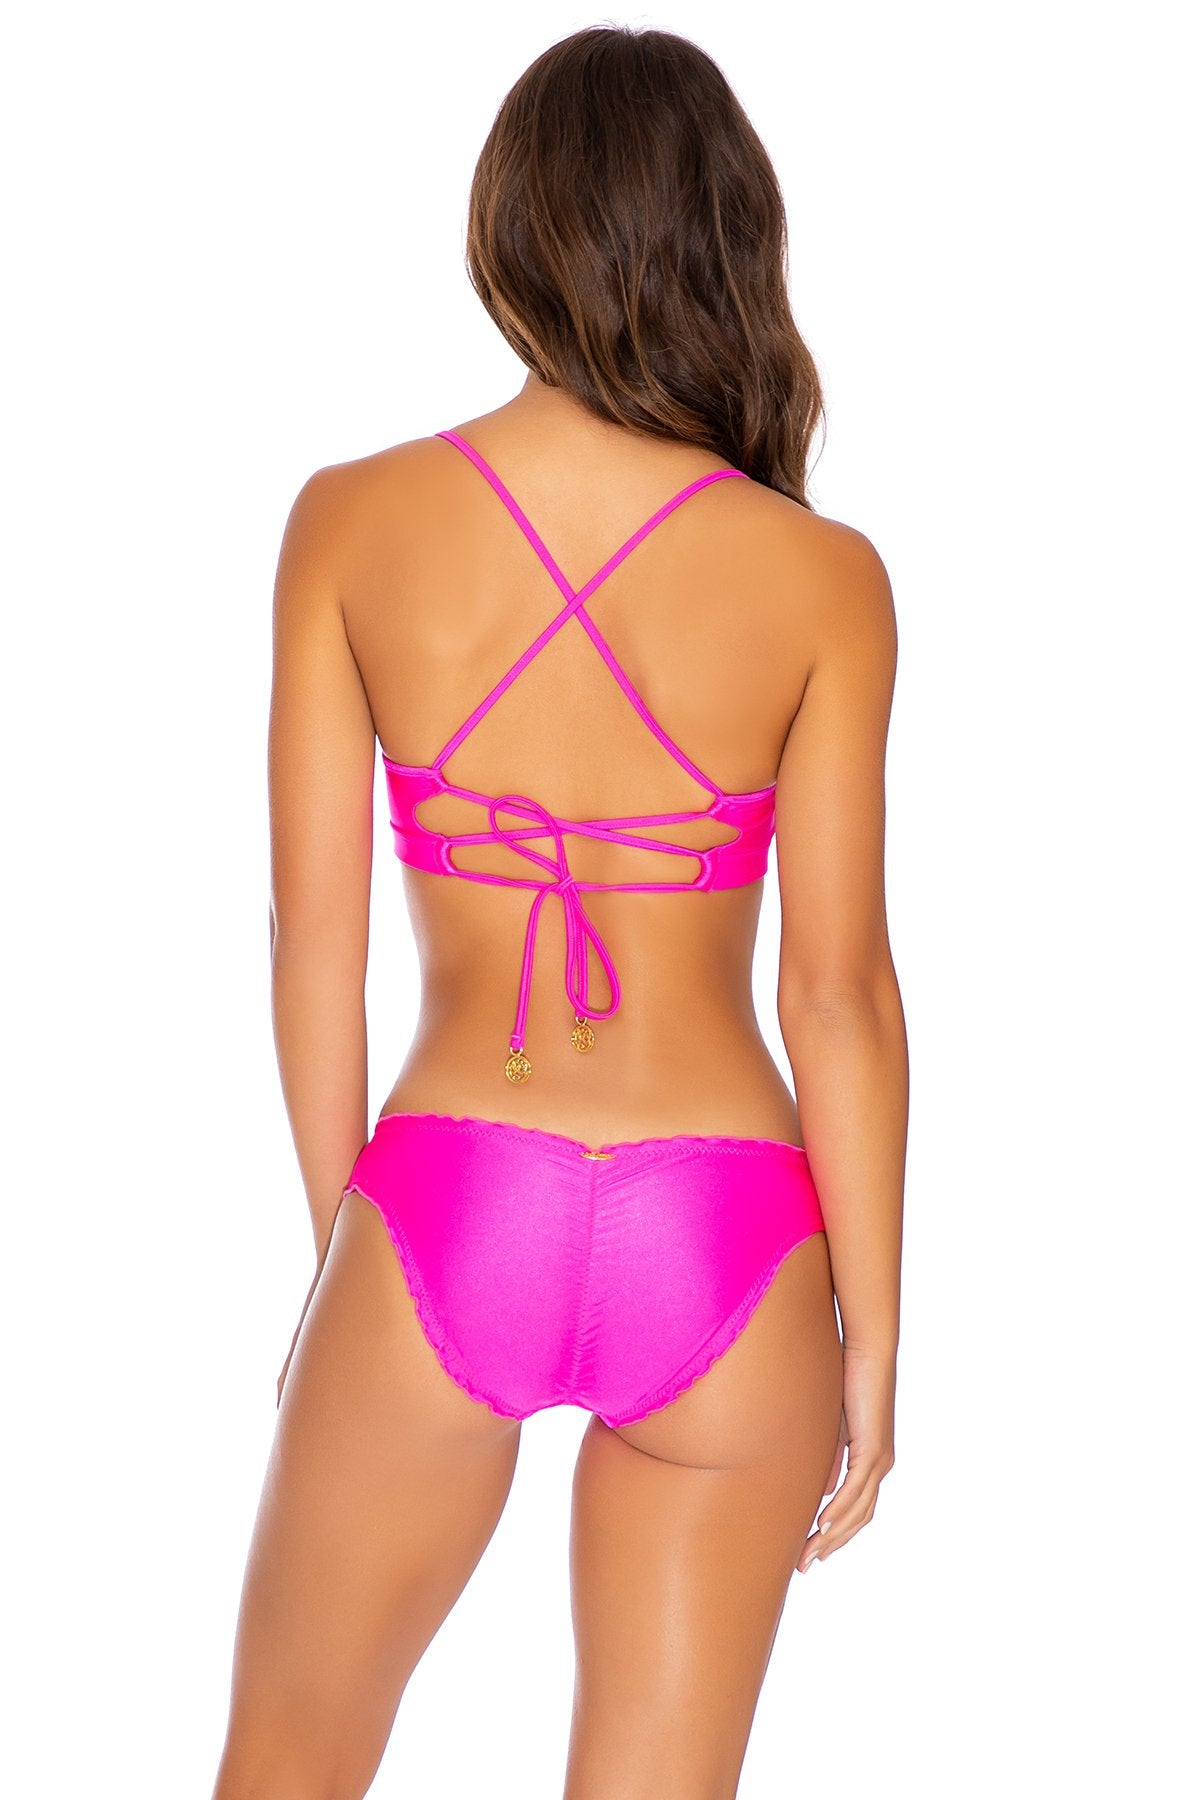 COSITA BUENA - Underwire Top & Seamless Full Ruched Back Bottom • Poppin Pink